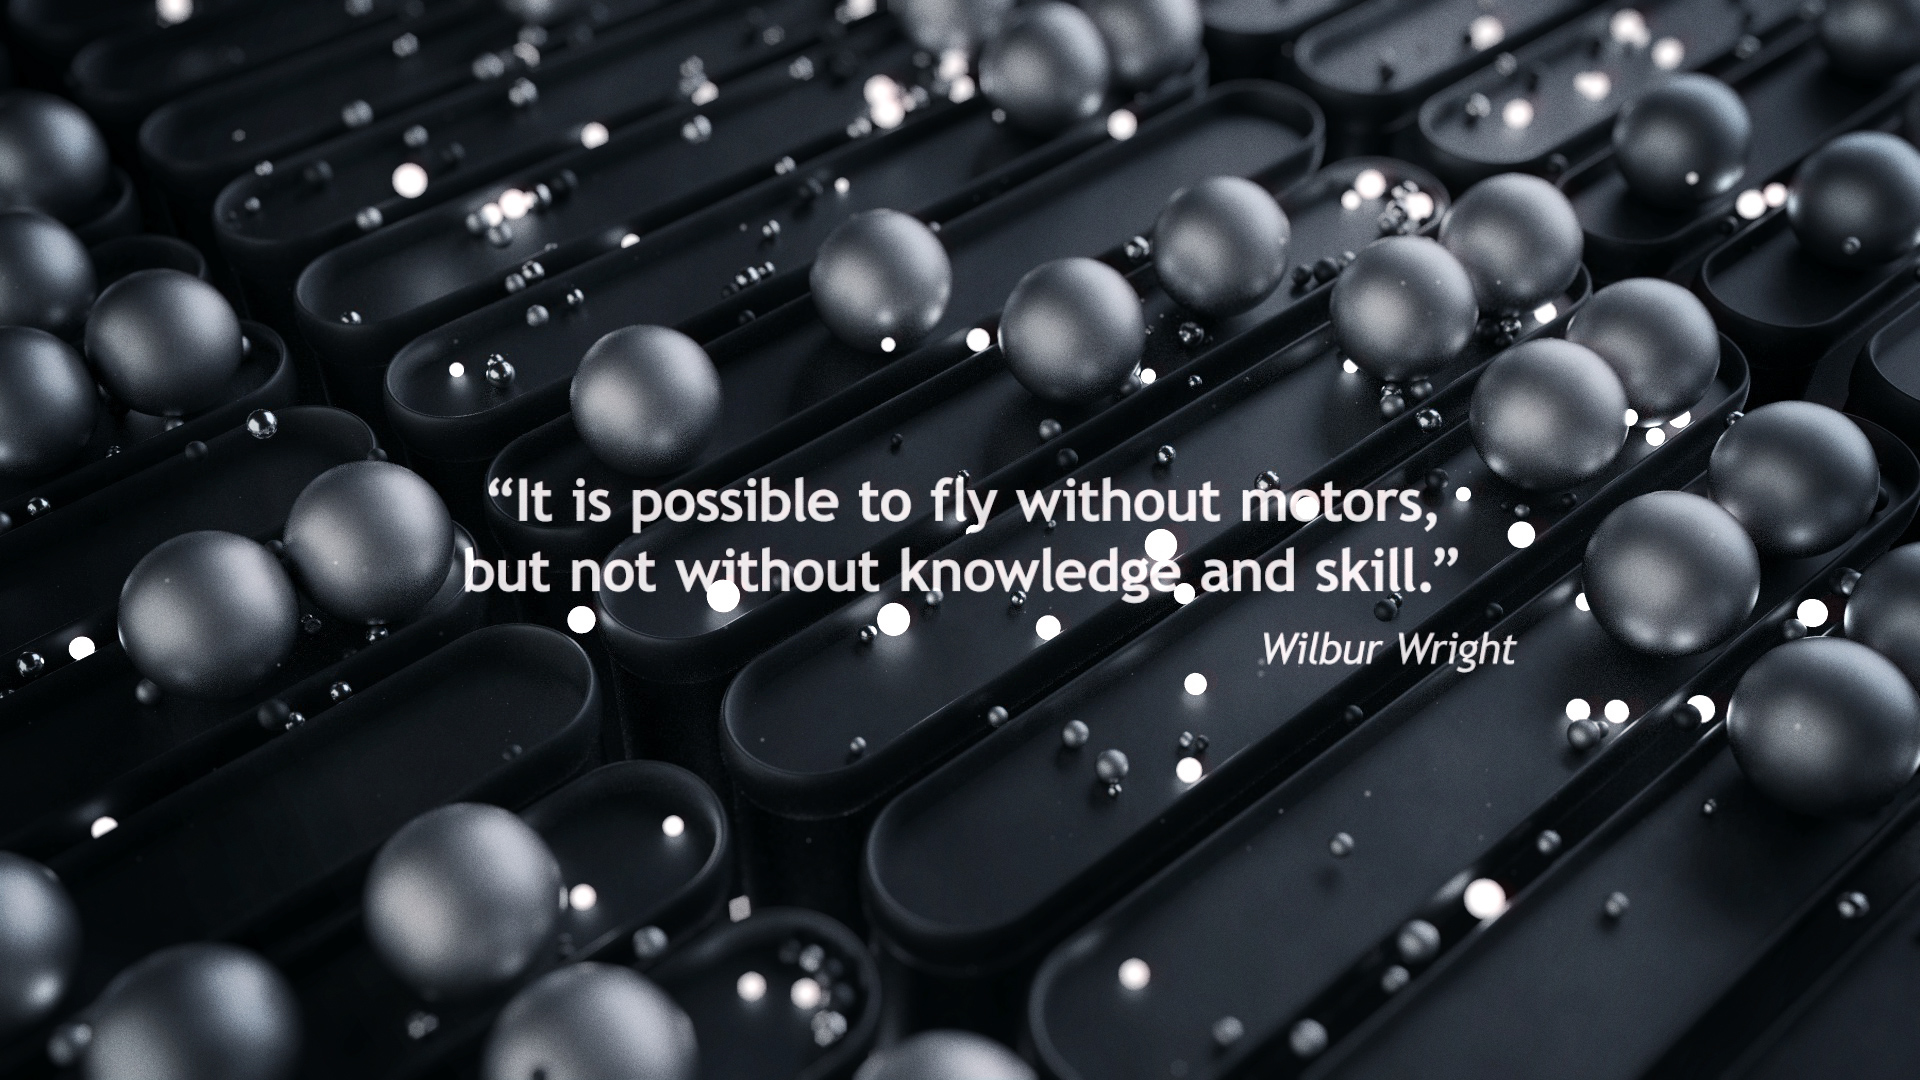 Wilbur Wright Quotes7359614314 - Wilbur Wright Quotes - Wright, Wilbur, Simplicity, Quotes